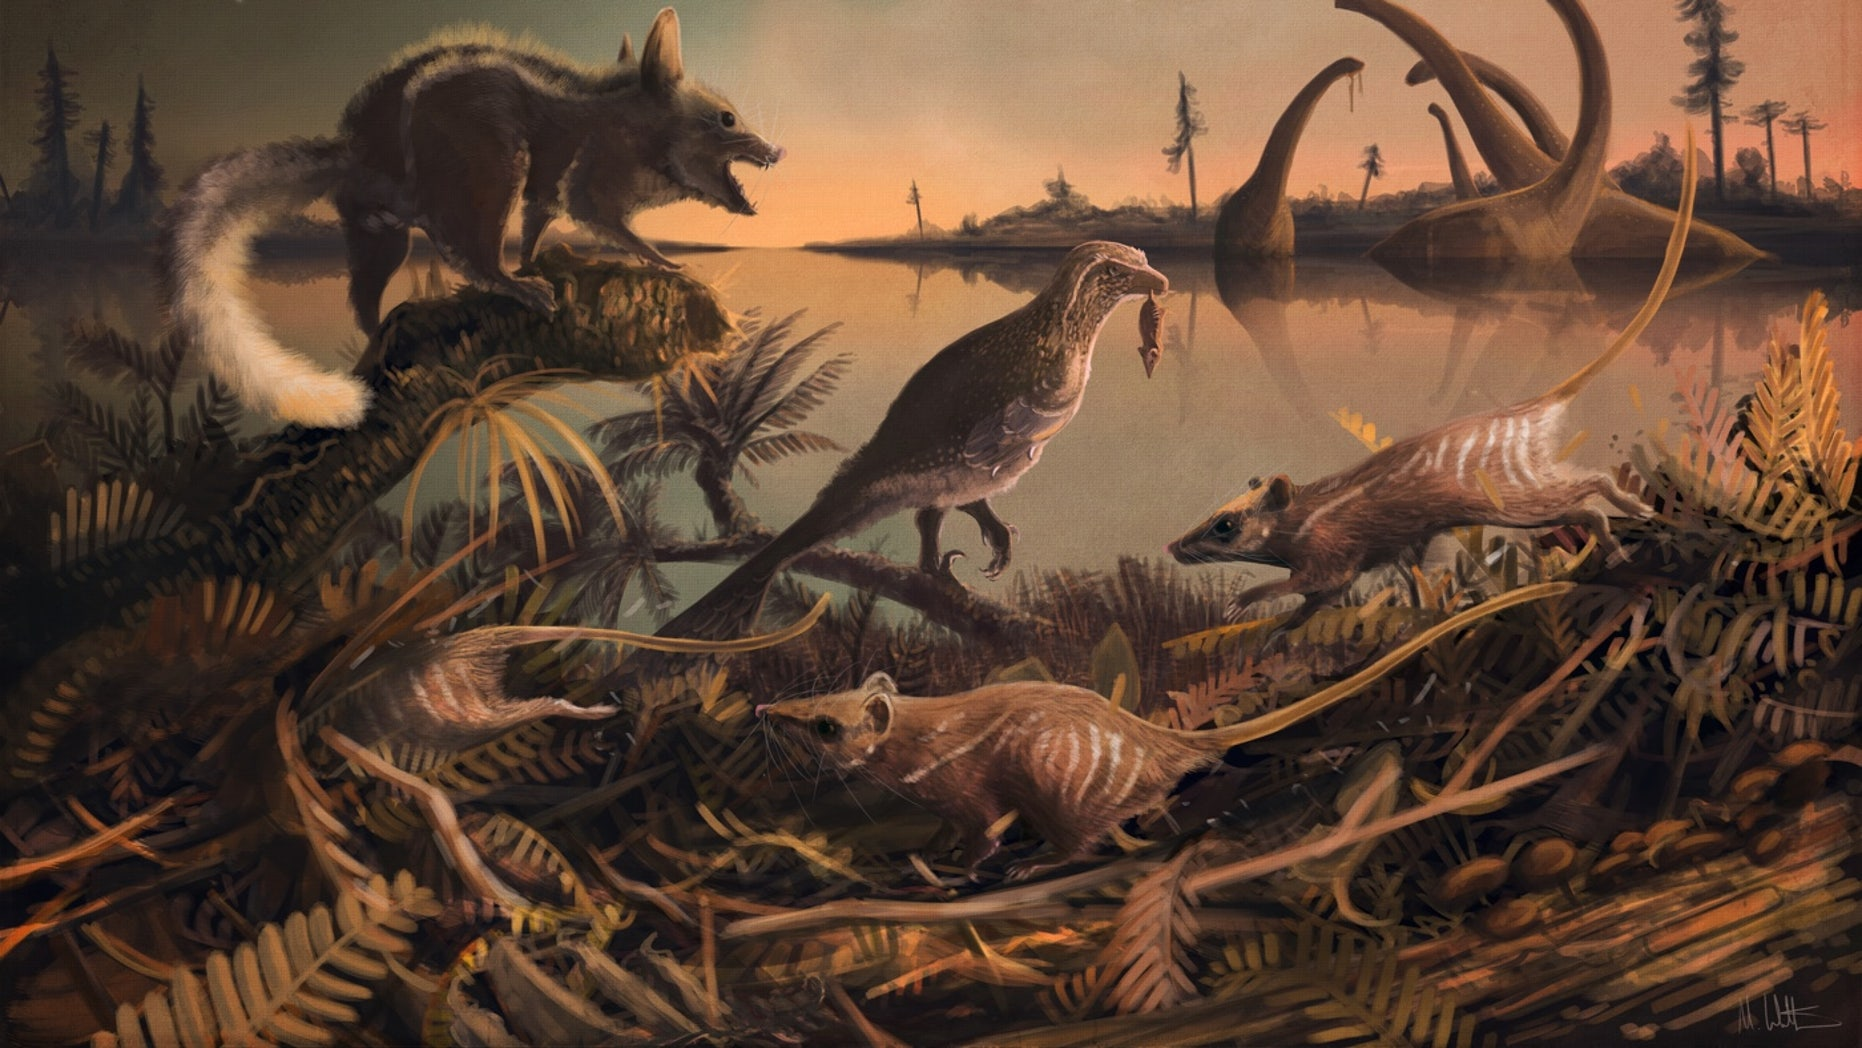 The earliest ancestors of eutherian mammals were small rat-like creatures (depicted in this illustration) that lived 145 million years ago in the shadow of the dinosaurs.